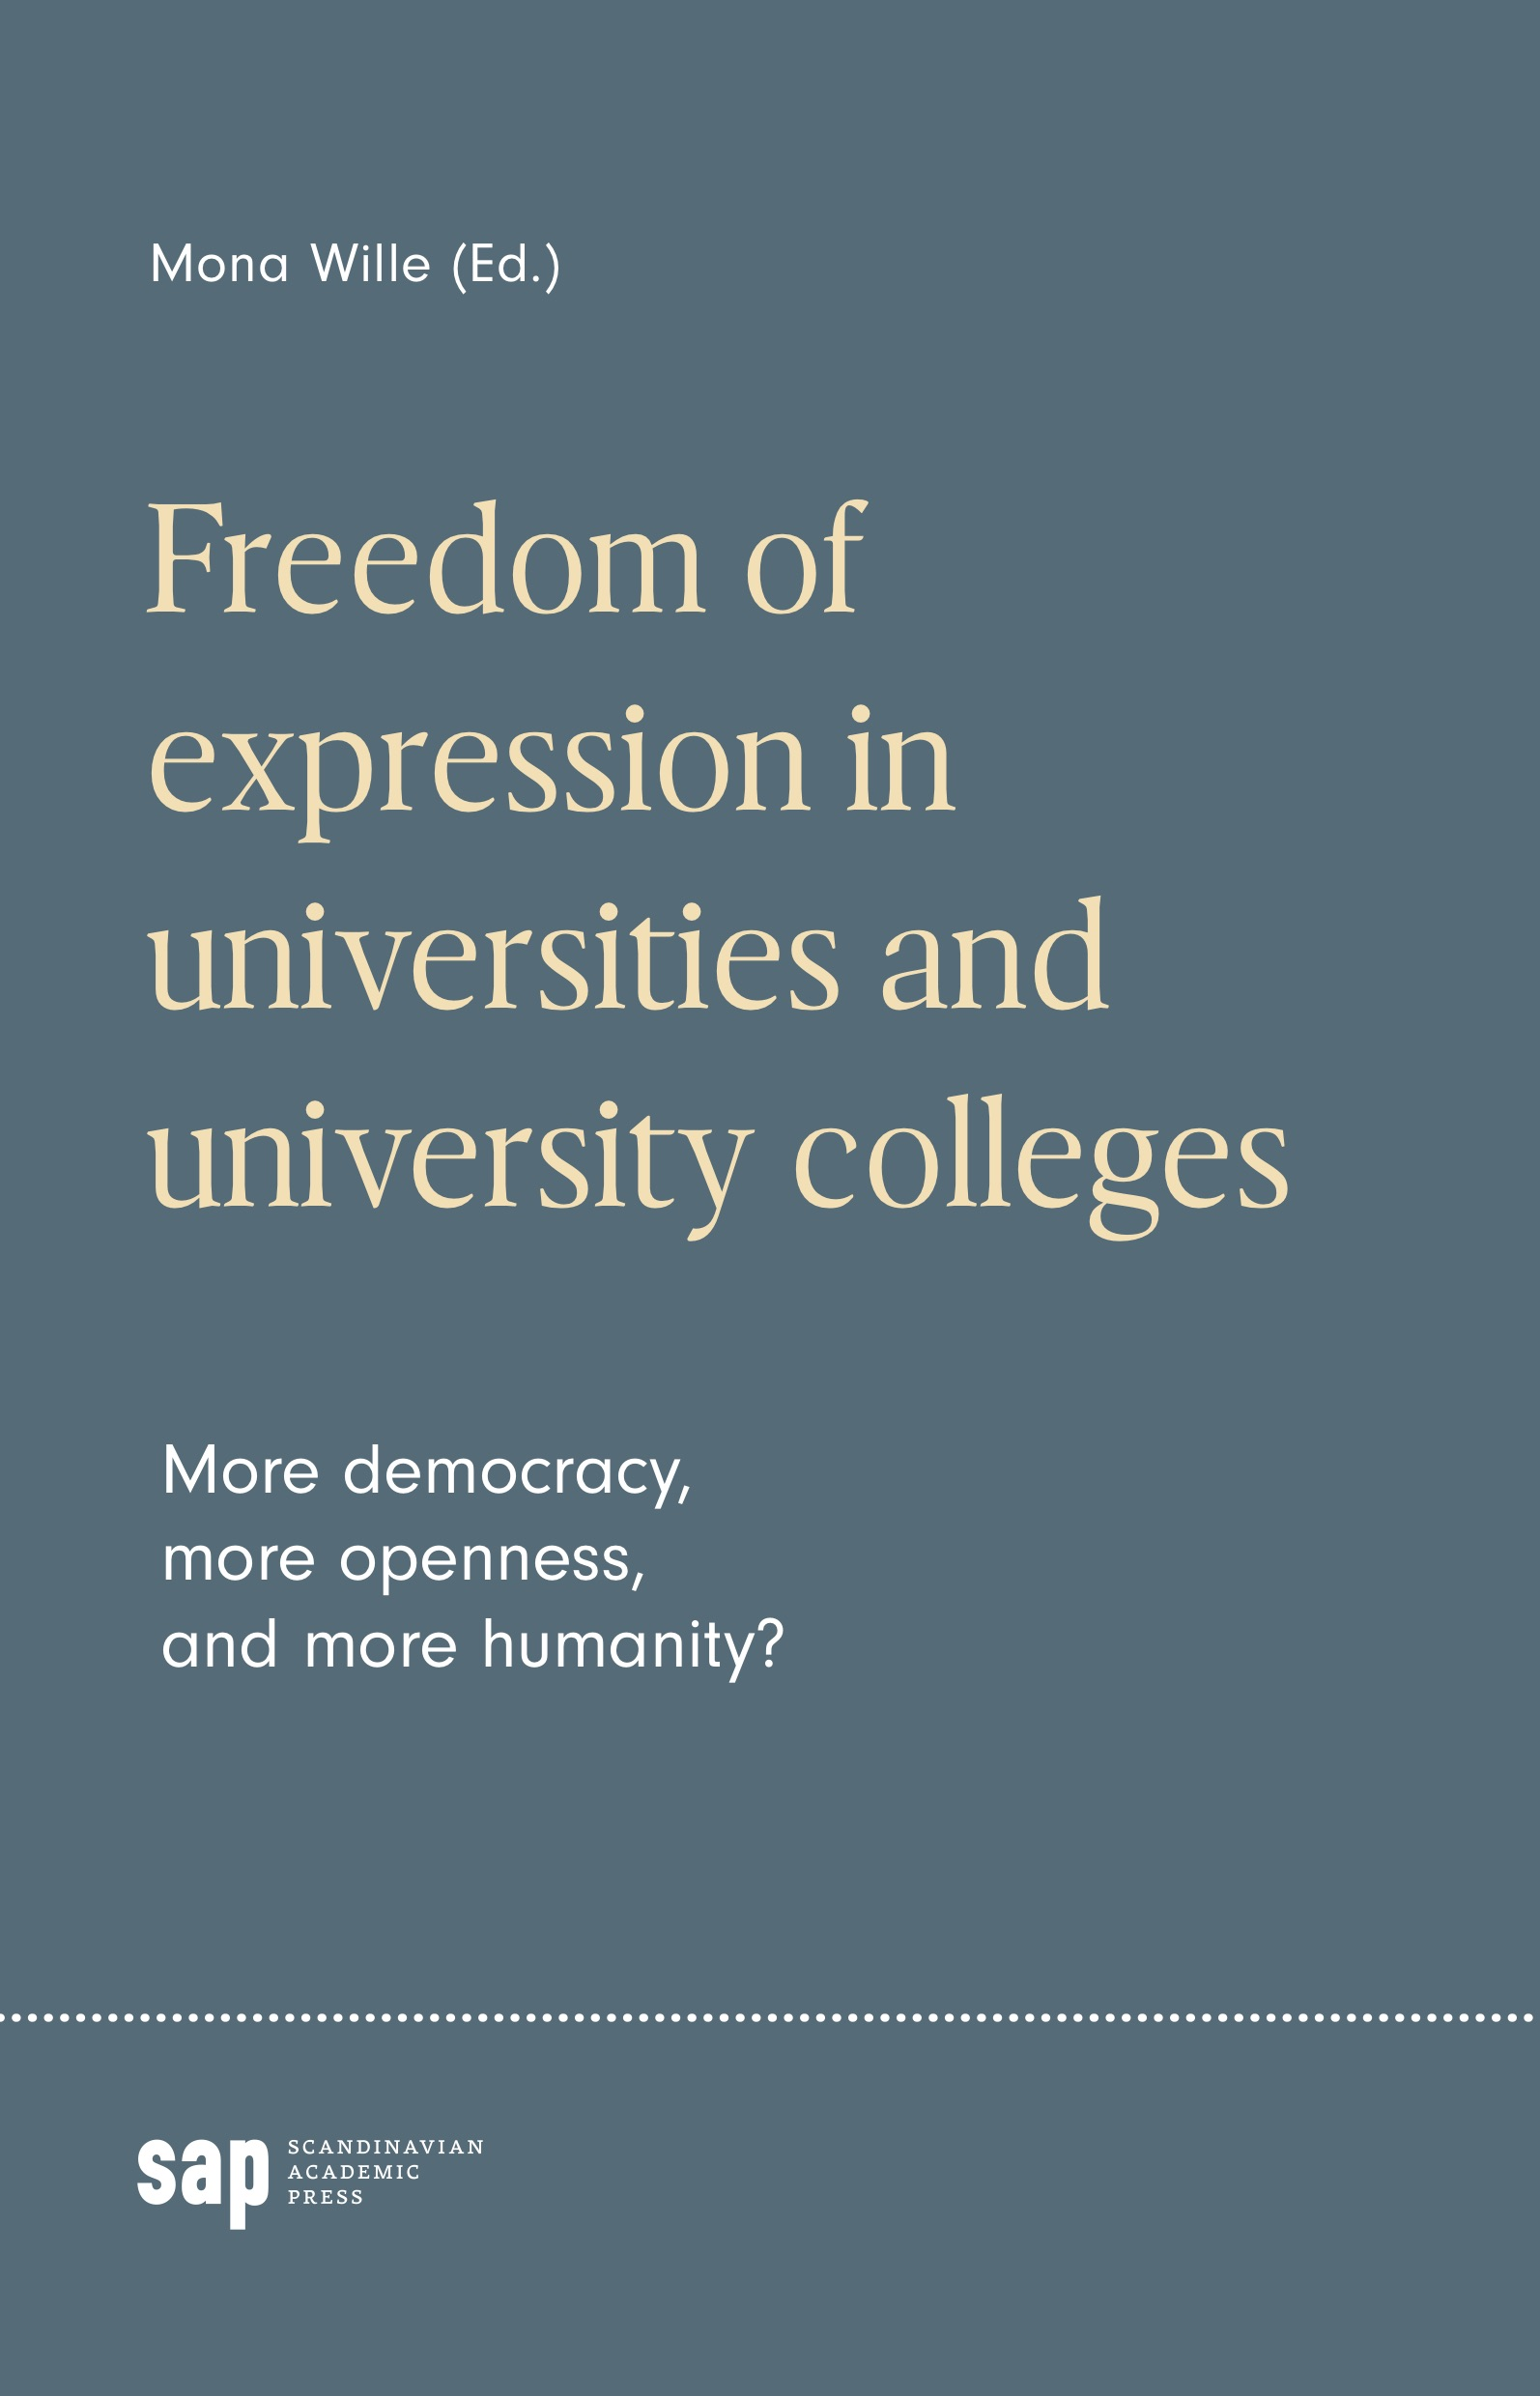 Freedom of expression in universities and university colleges